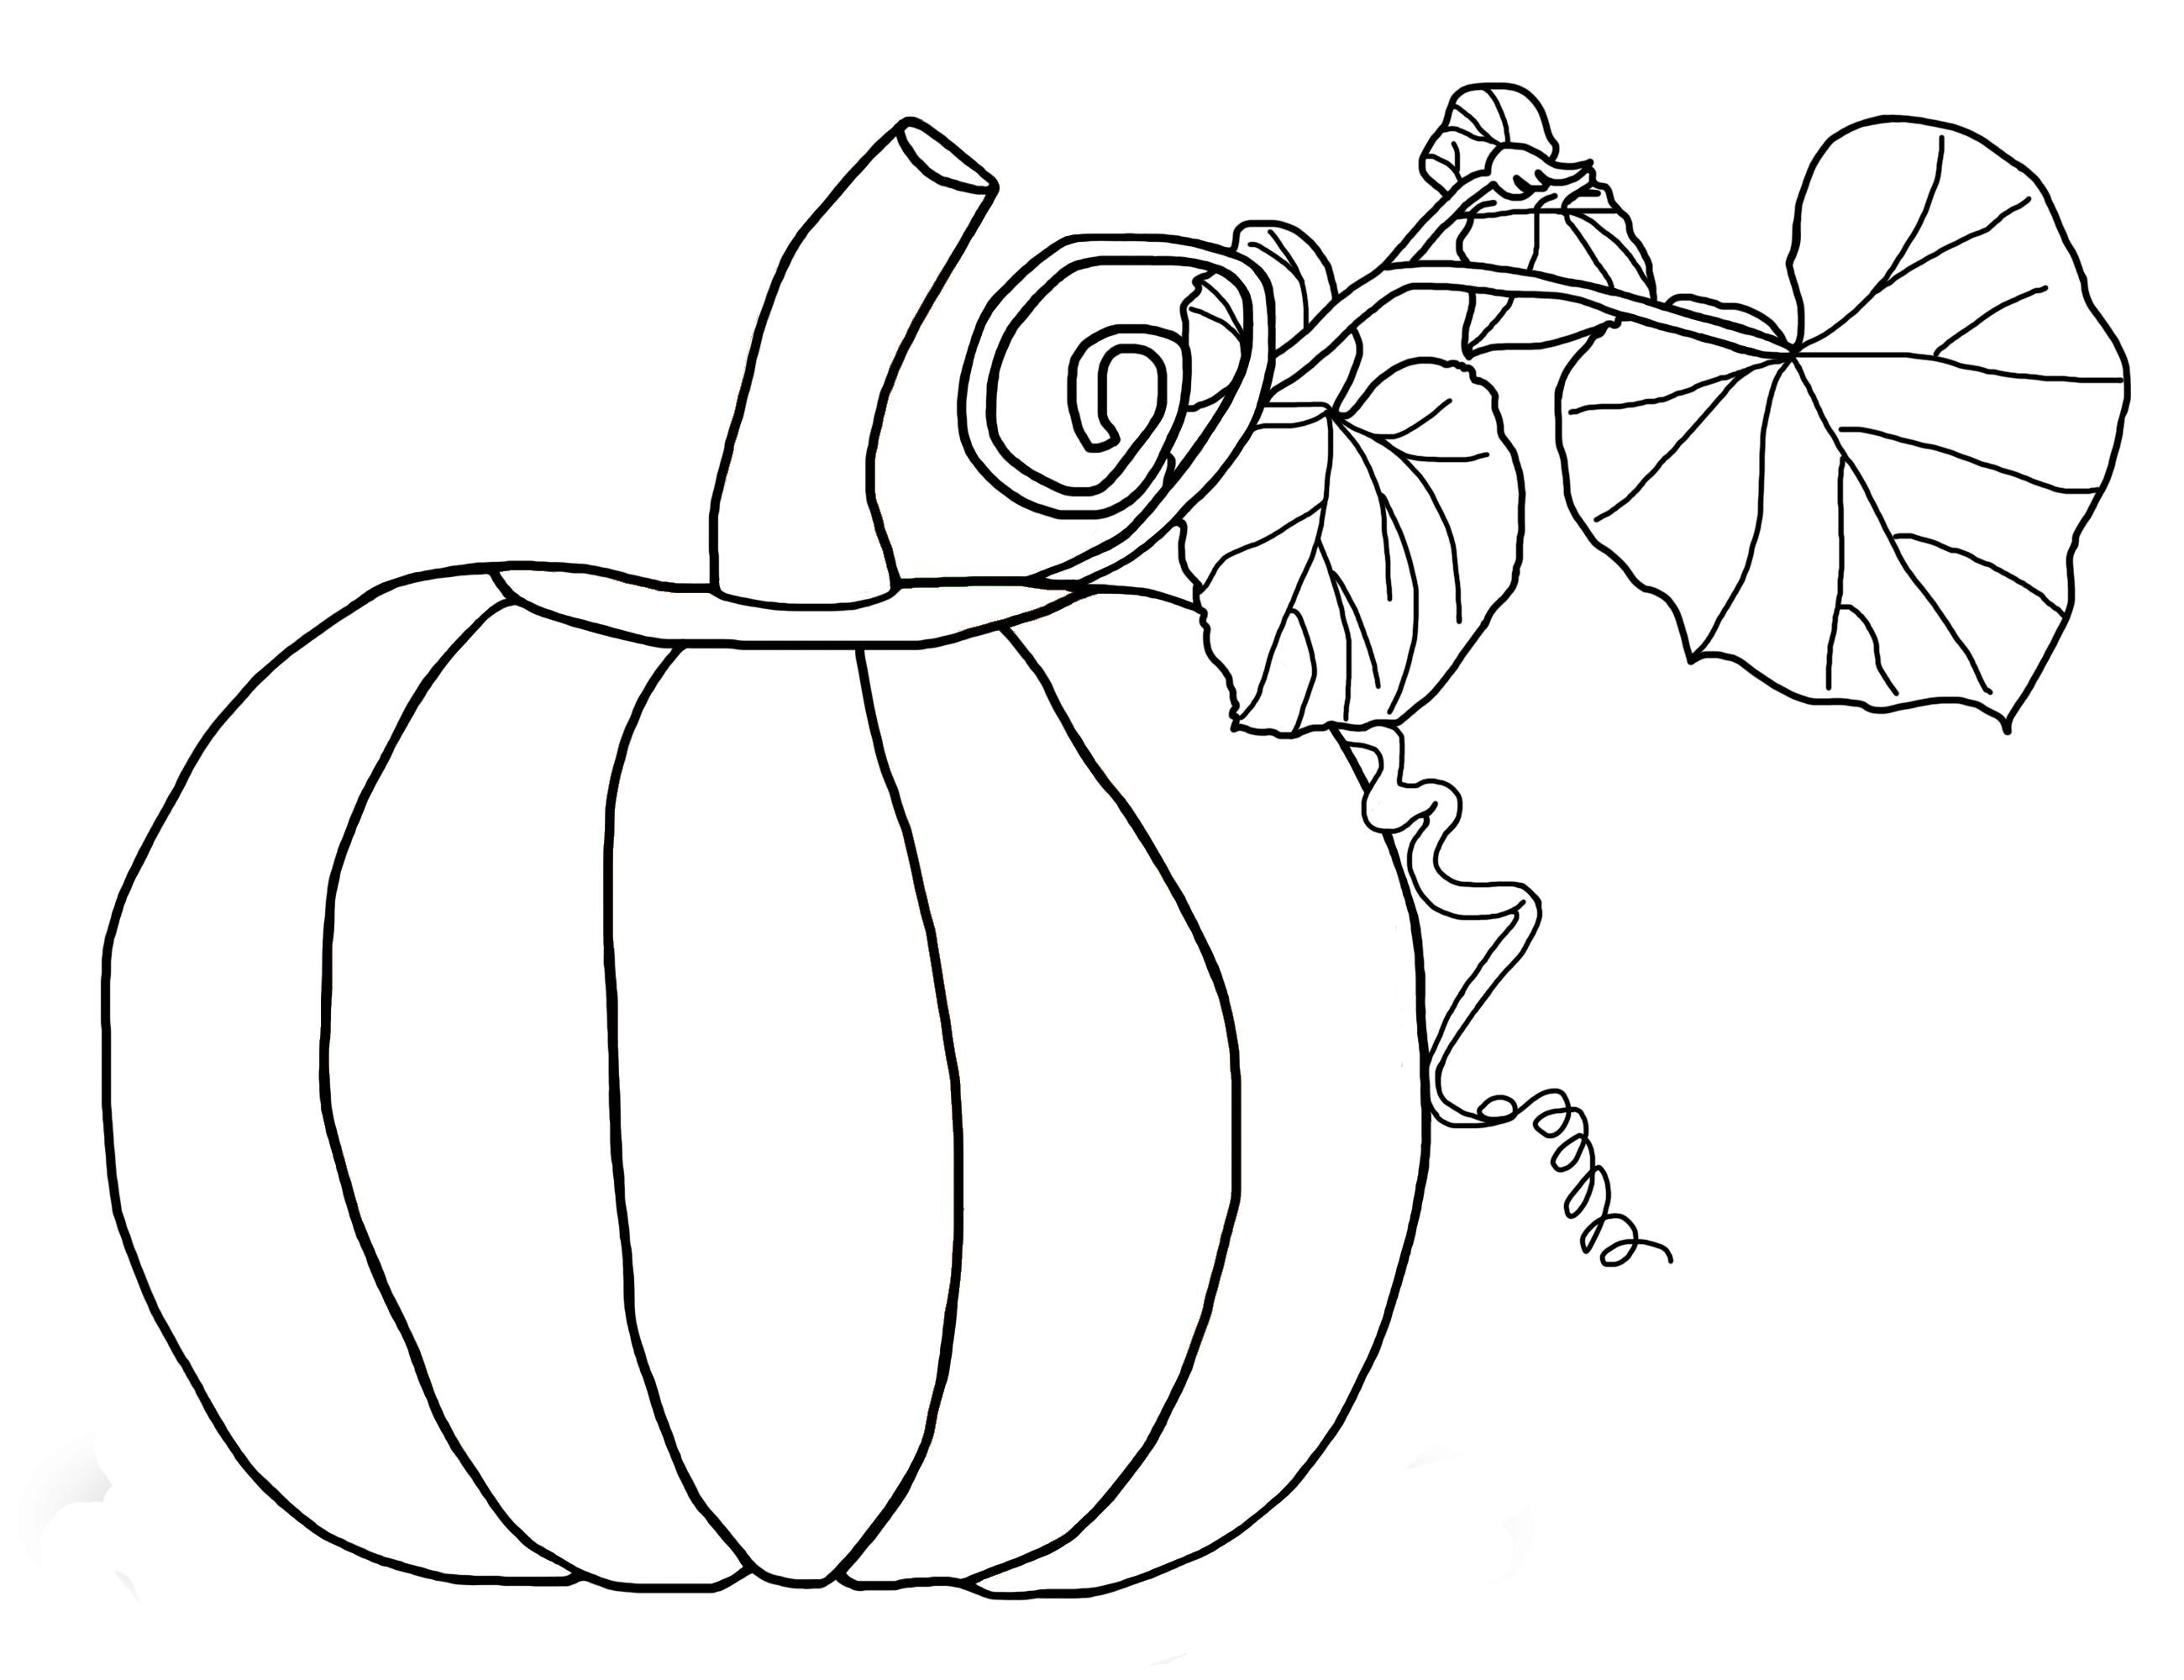 5 Little Pumpkins Sitting On A Gate Coloring Page